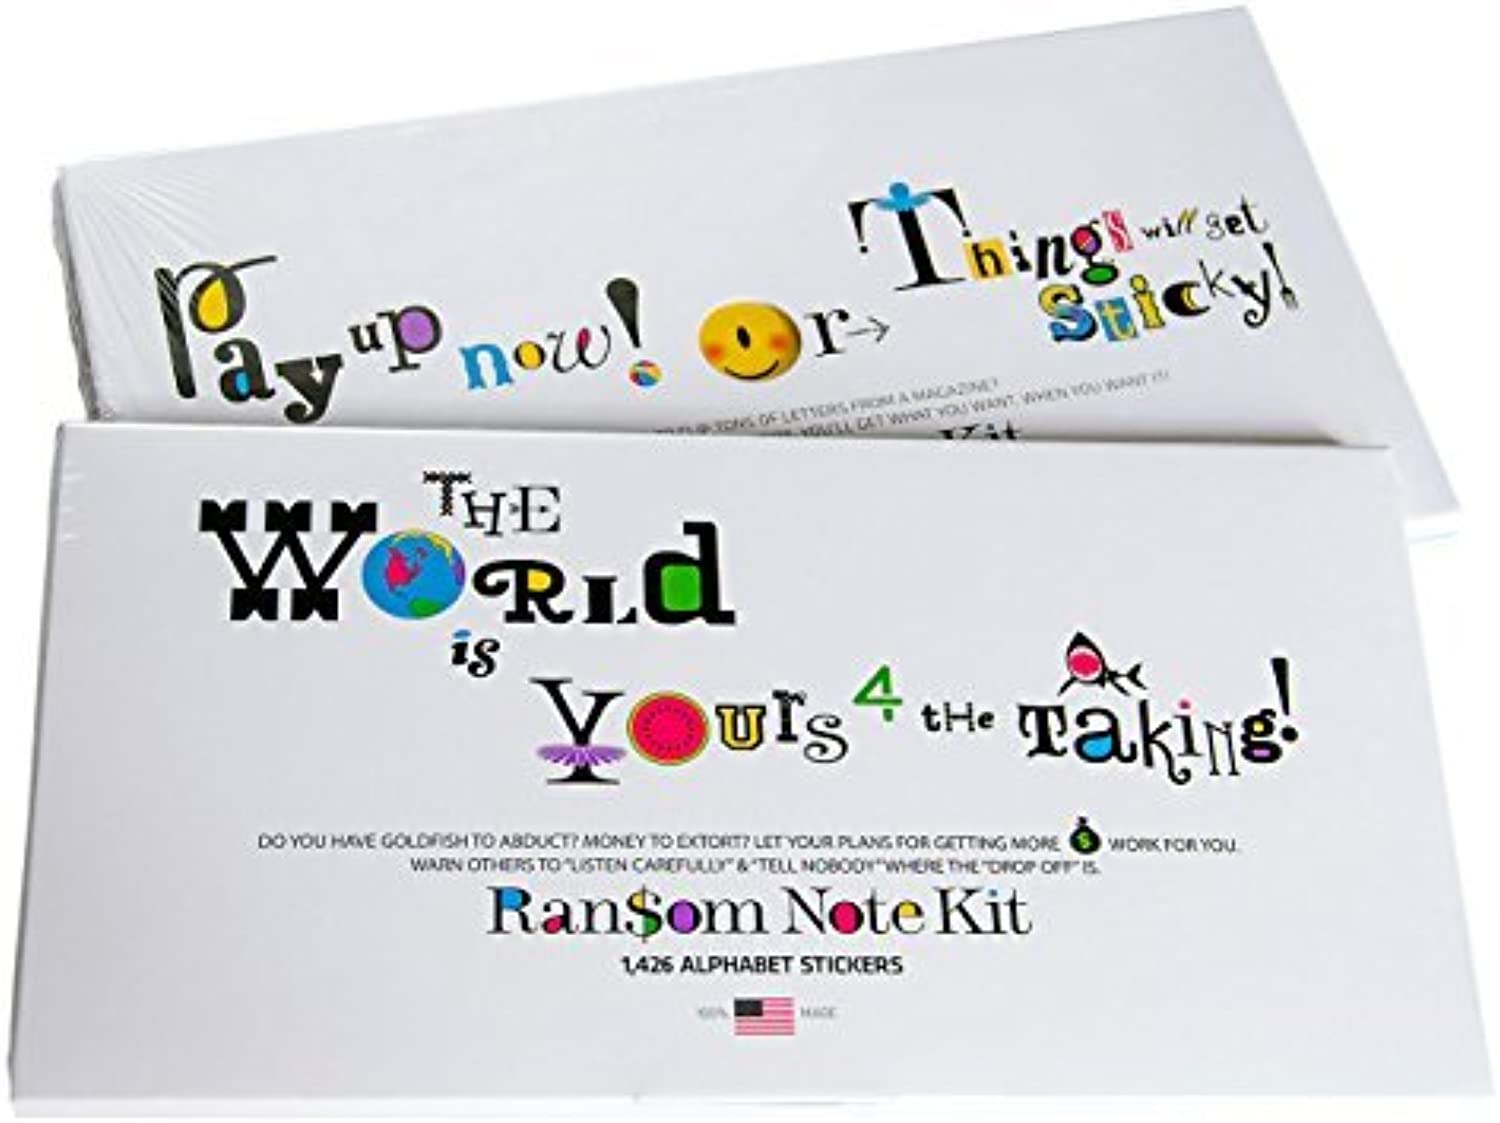 Alphabet Stickers - Ransom Note Kit by a-QK pronounced a-QooKay